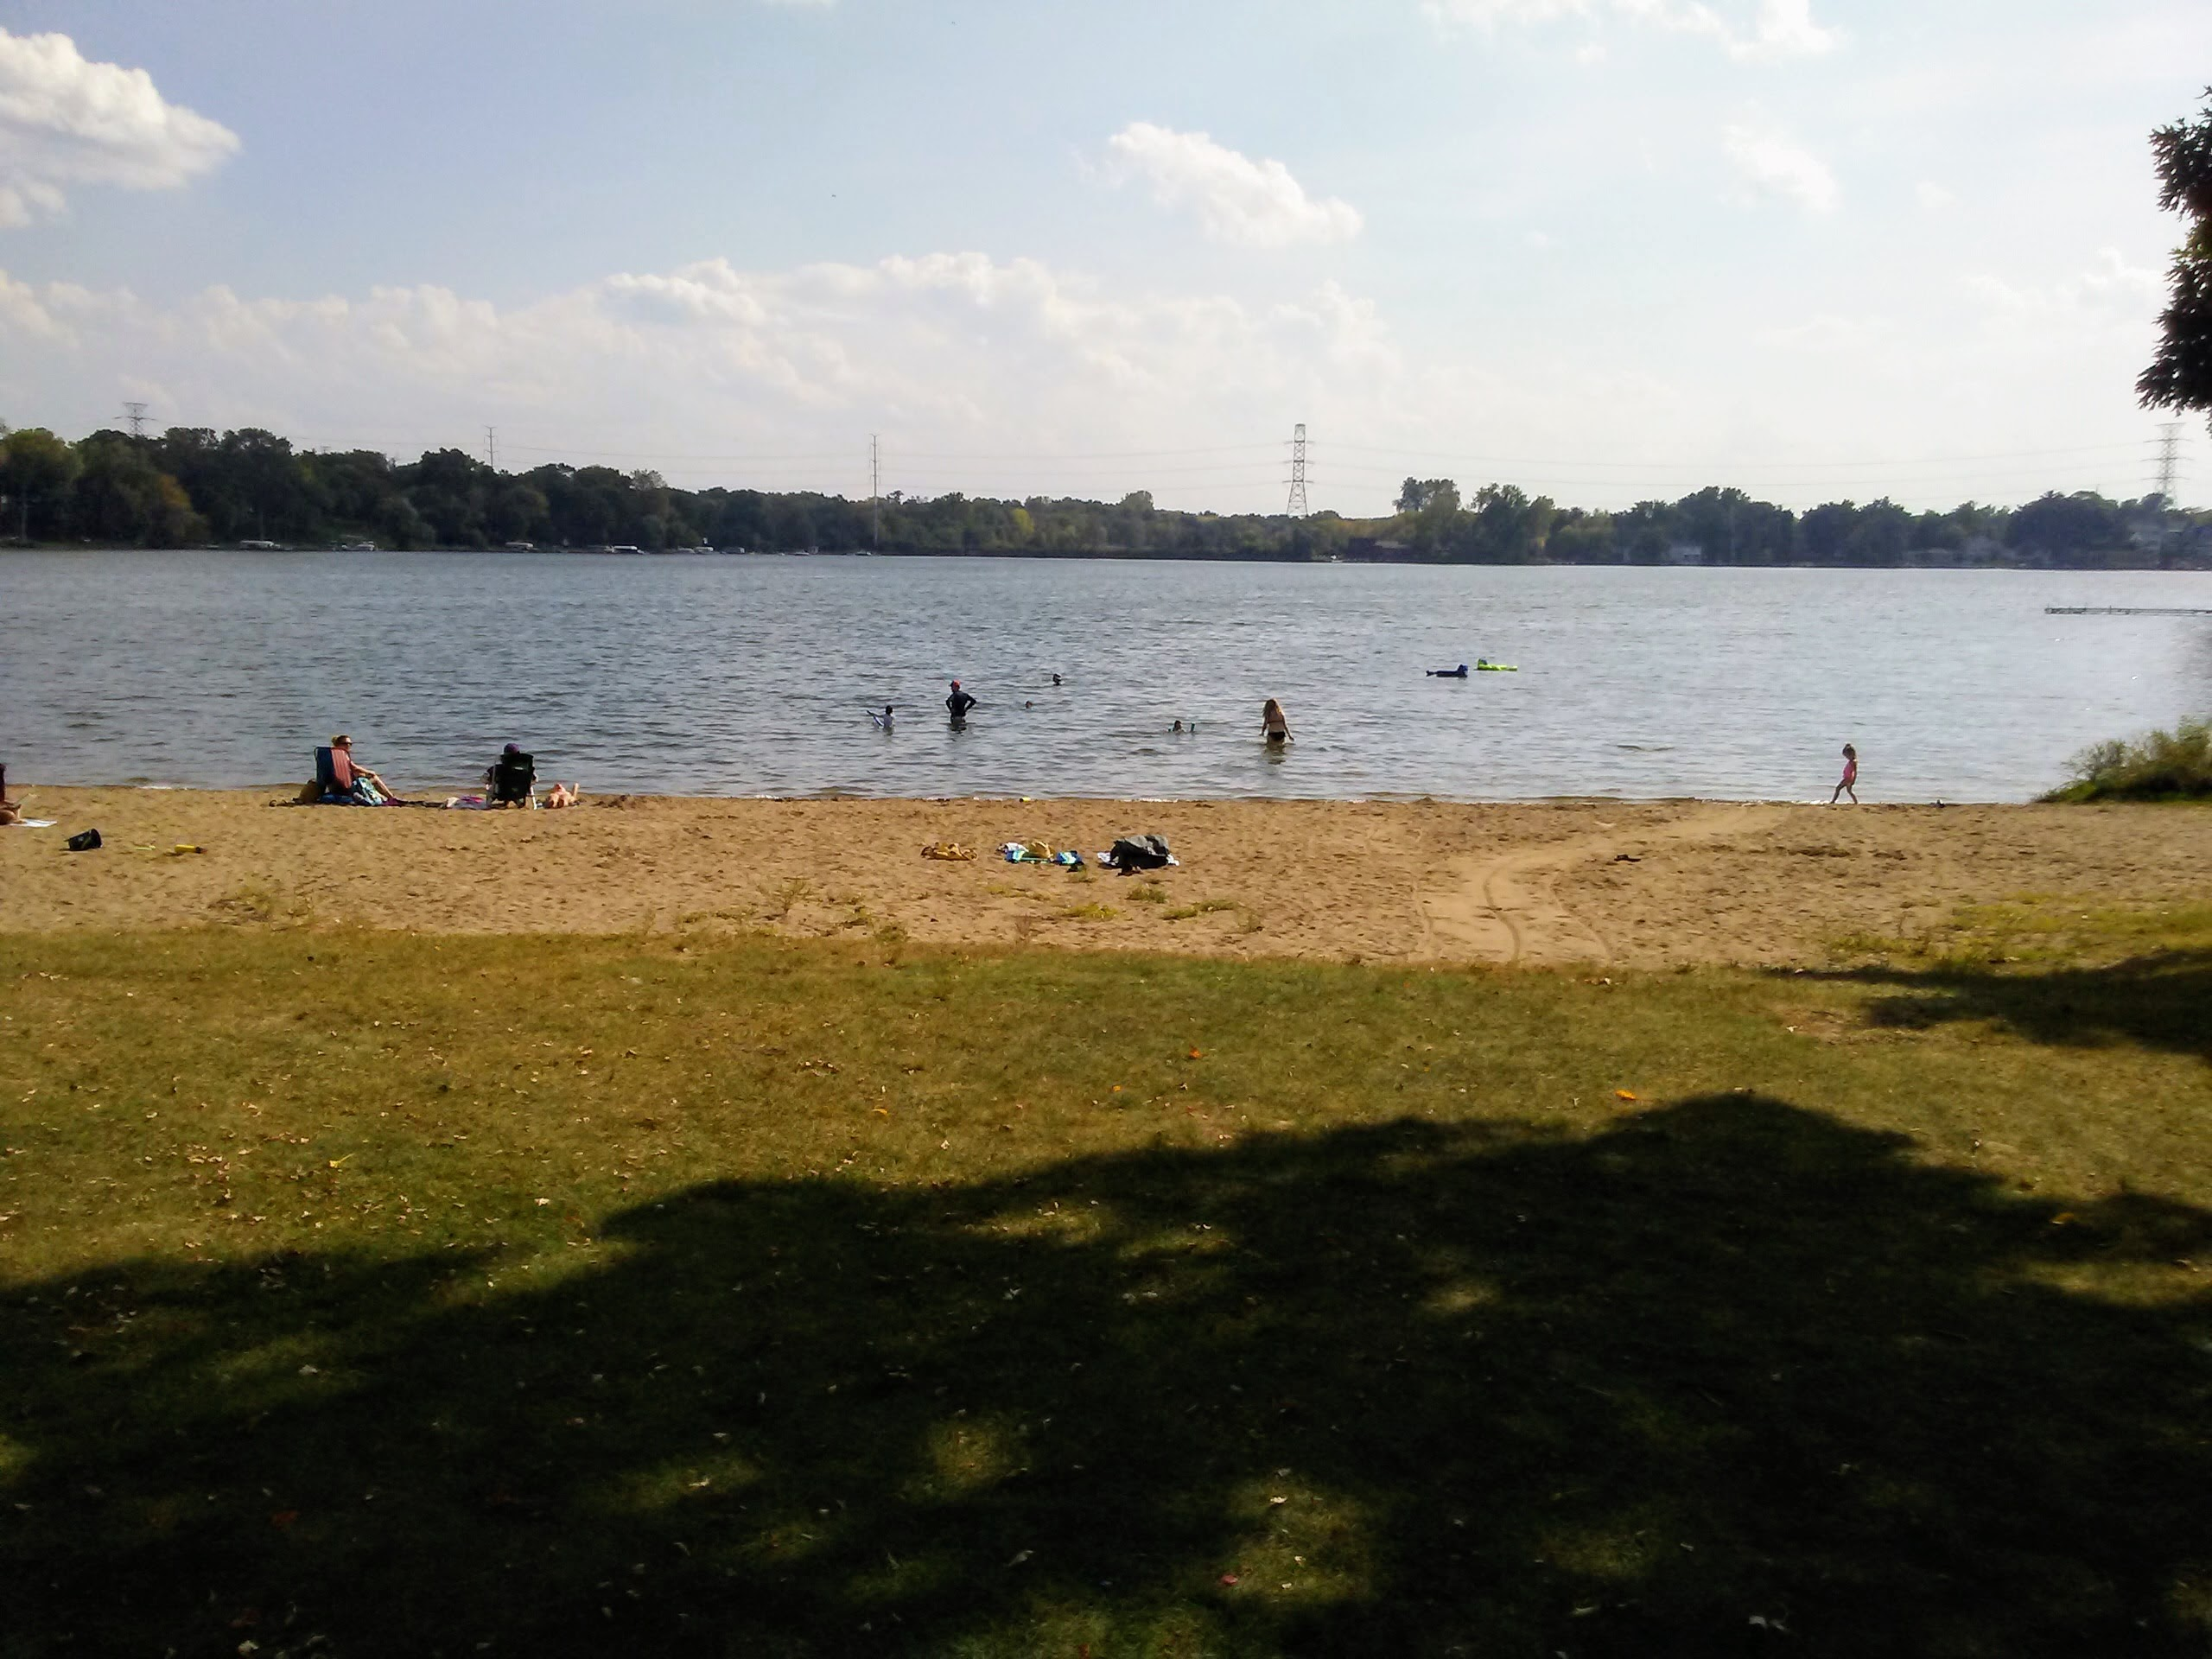 Beach use in Roseville on September 24, 2017